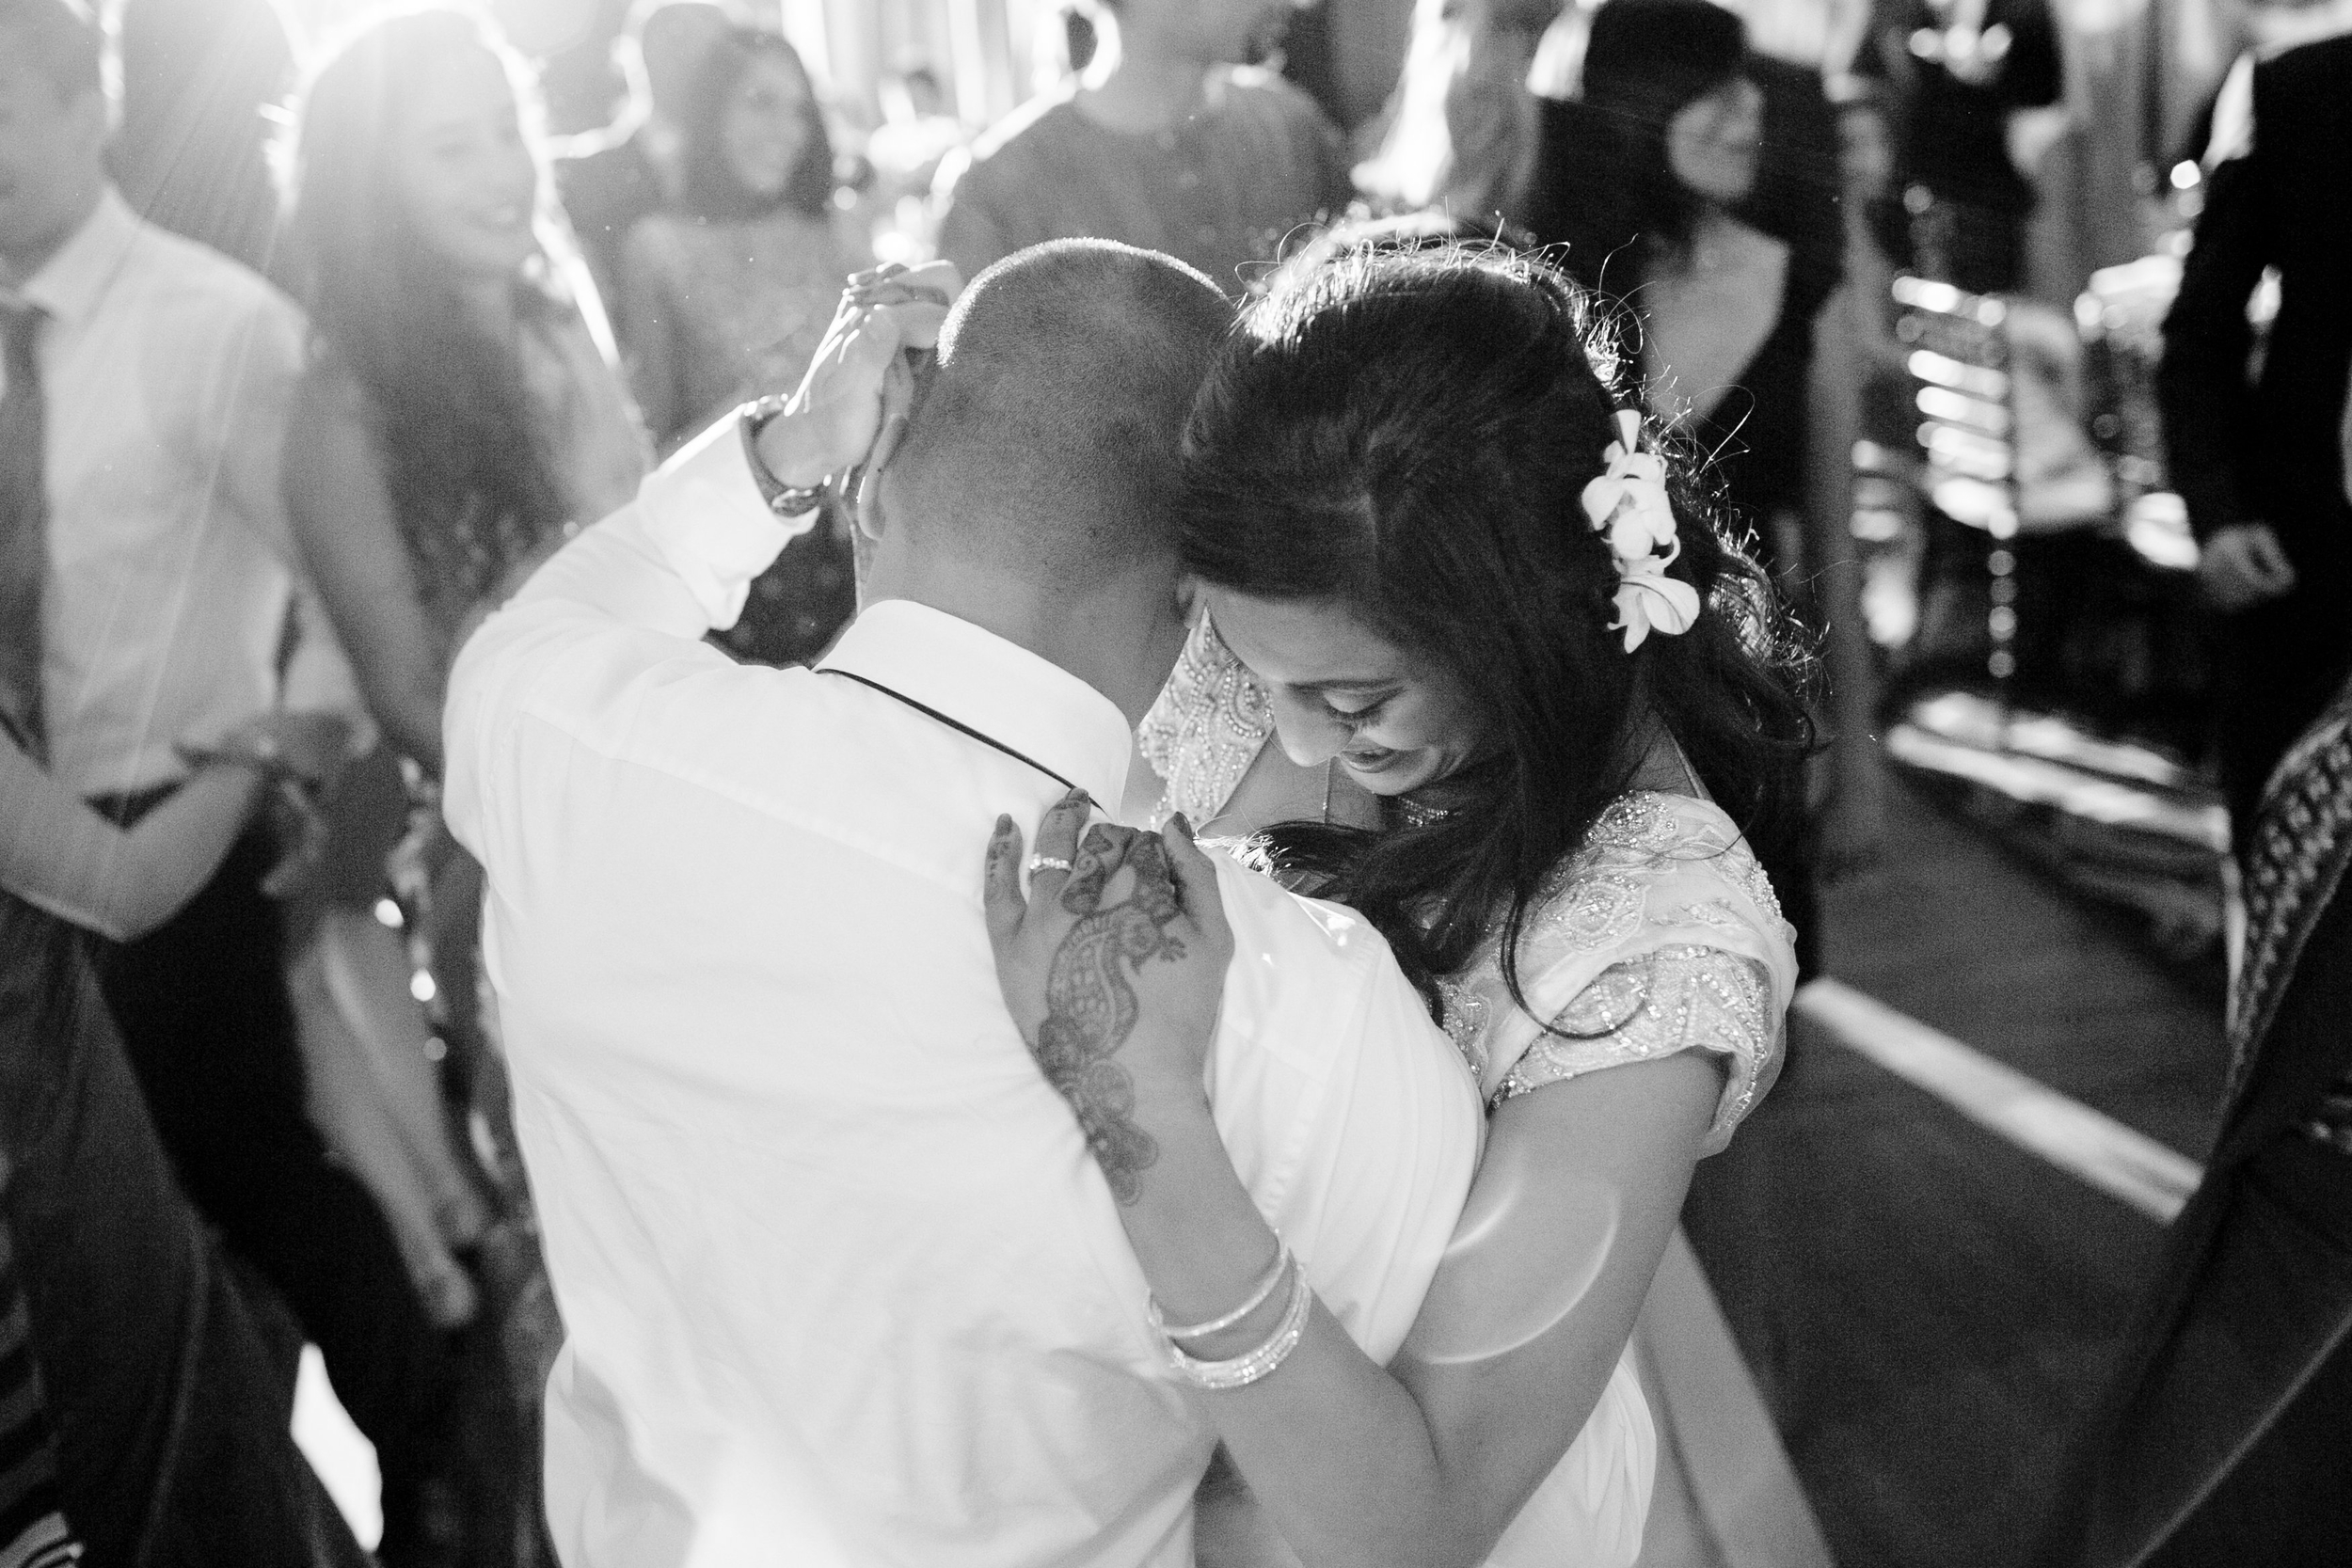 AnaisEvents_JihanCerdaPhotography_Priya-and-Jason - 151.jpg